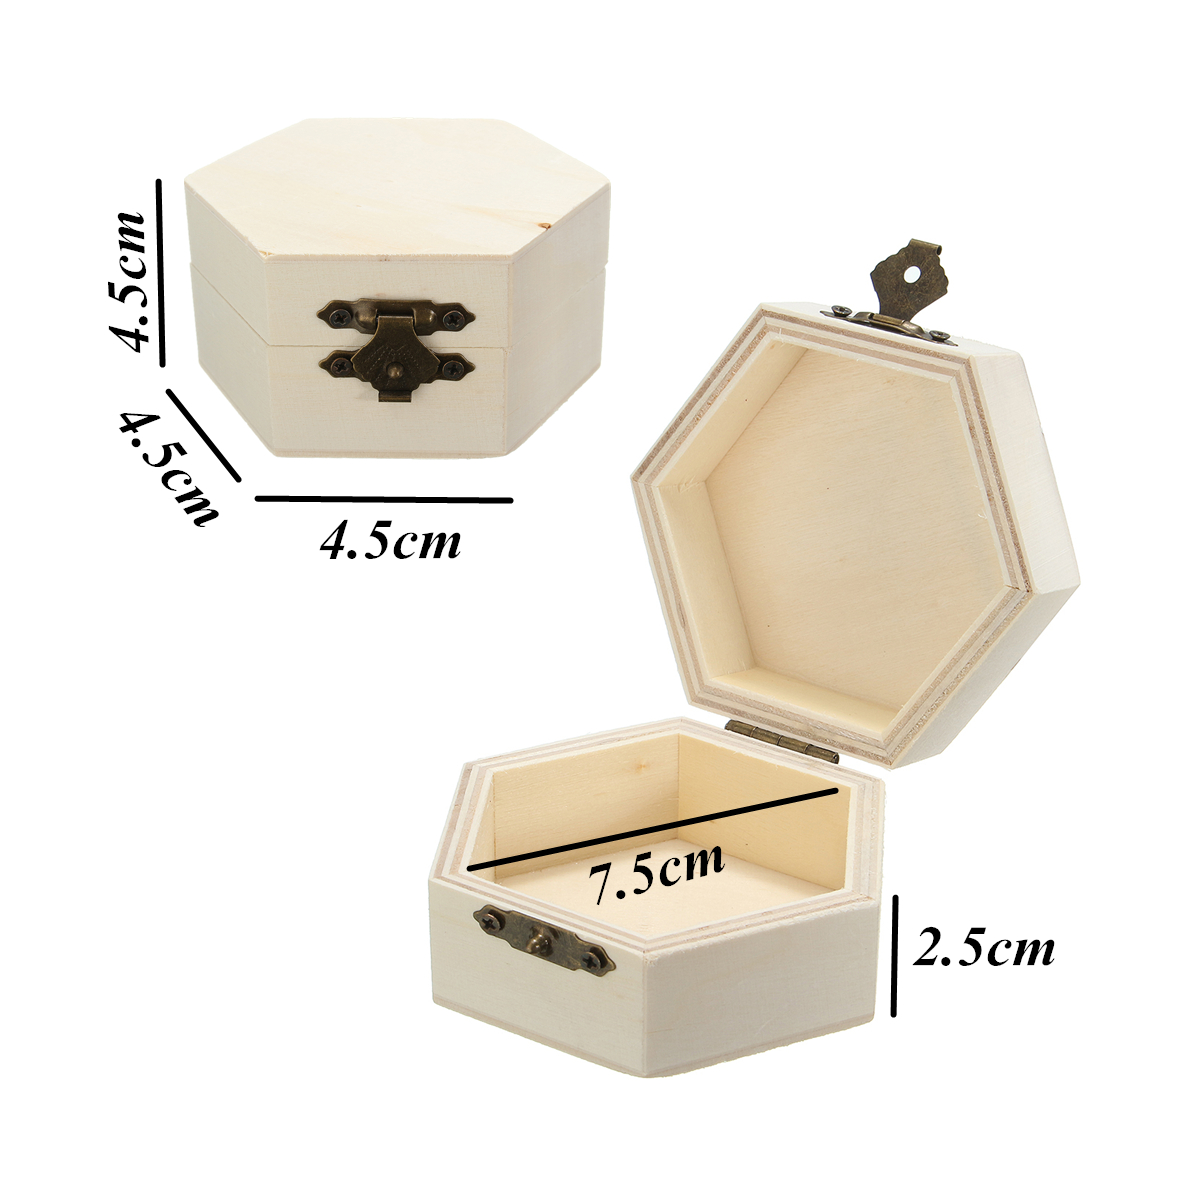 Hex Wooden Box Organizer Storage Craft Case for Handicraft Jewelry Home